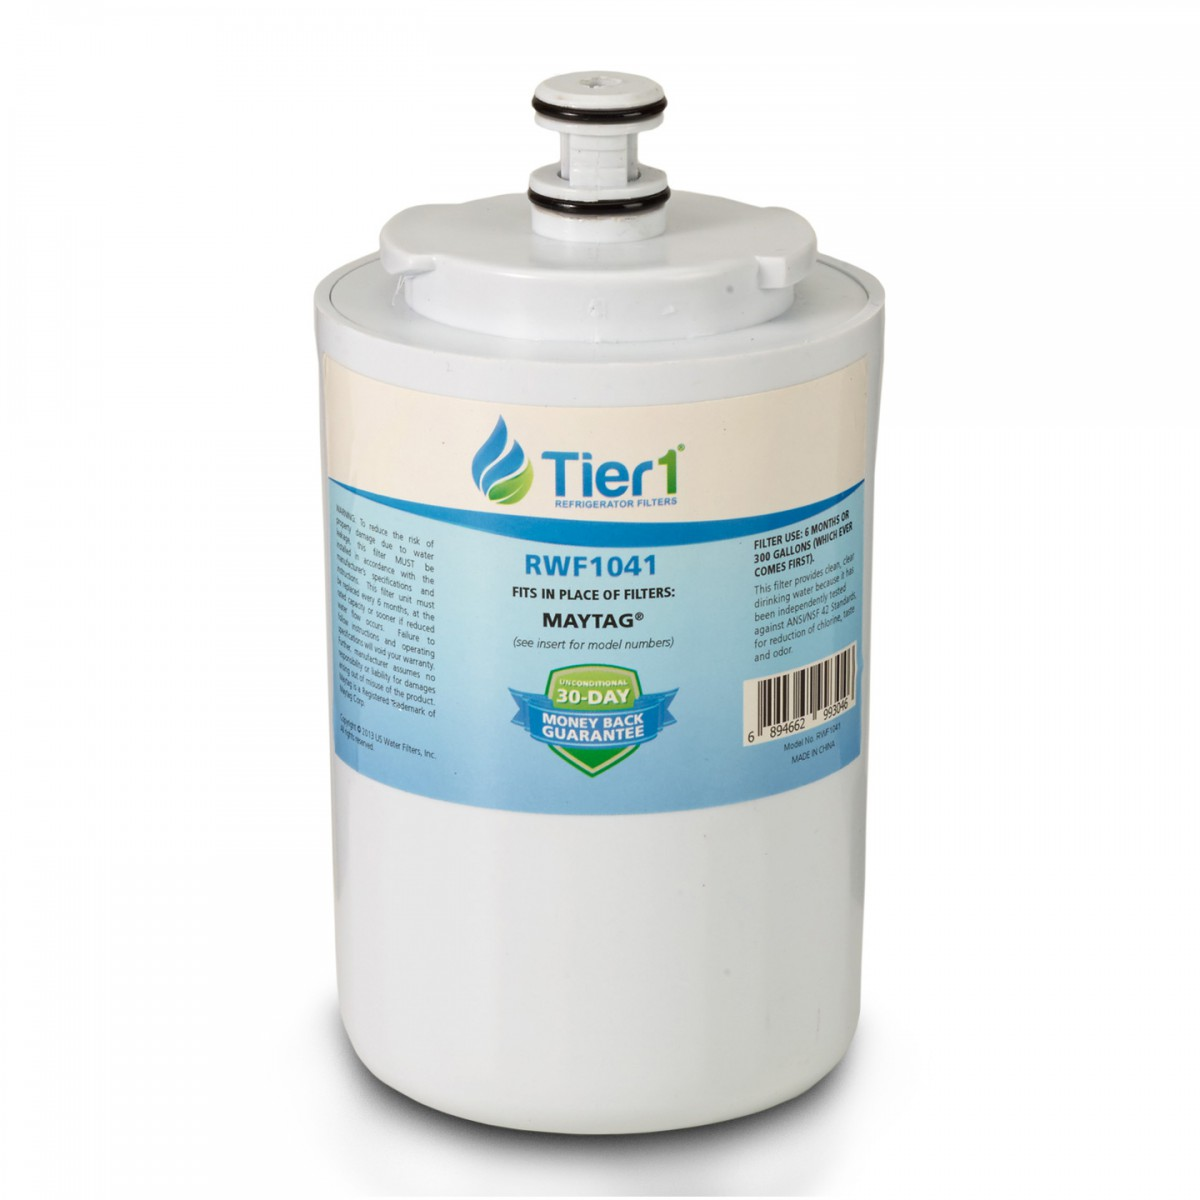 Ukf7003 Maytag Refrigerator Water Filter Replacement By Tier1